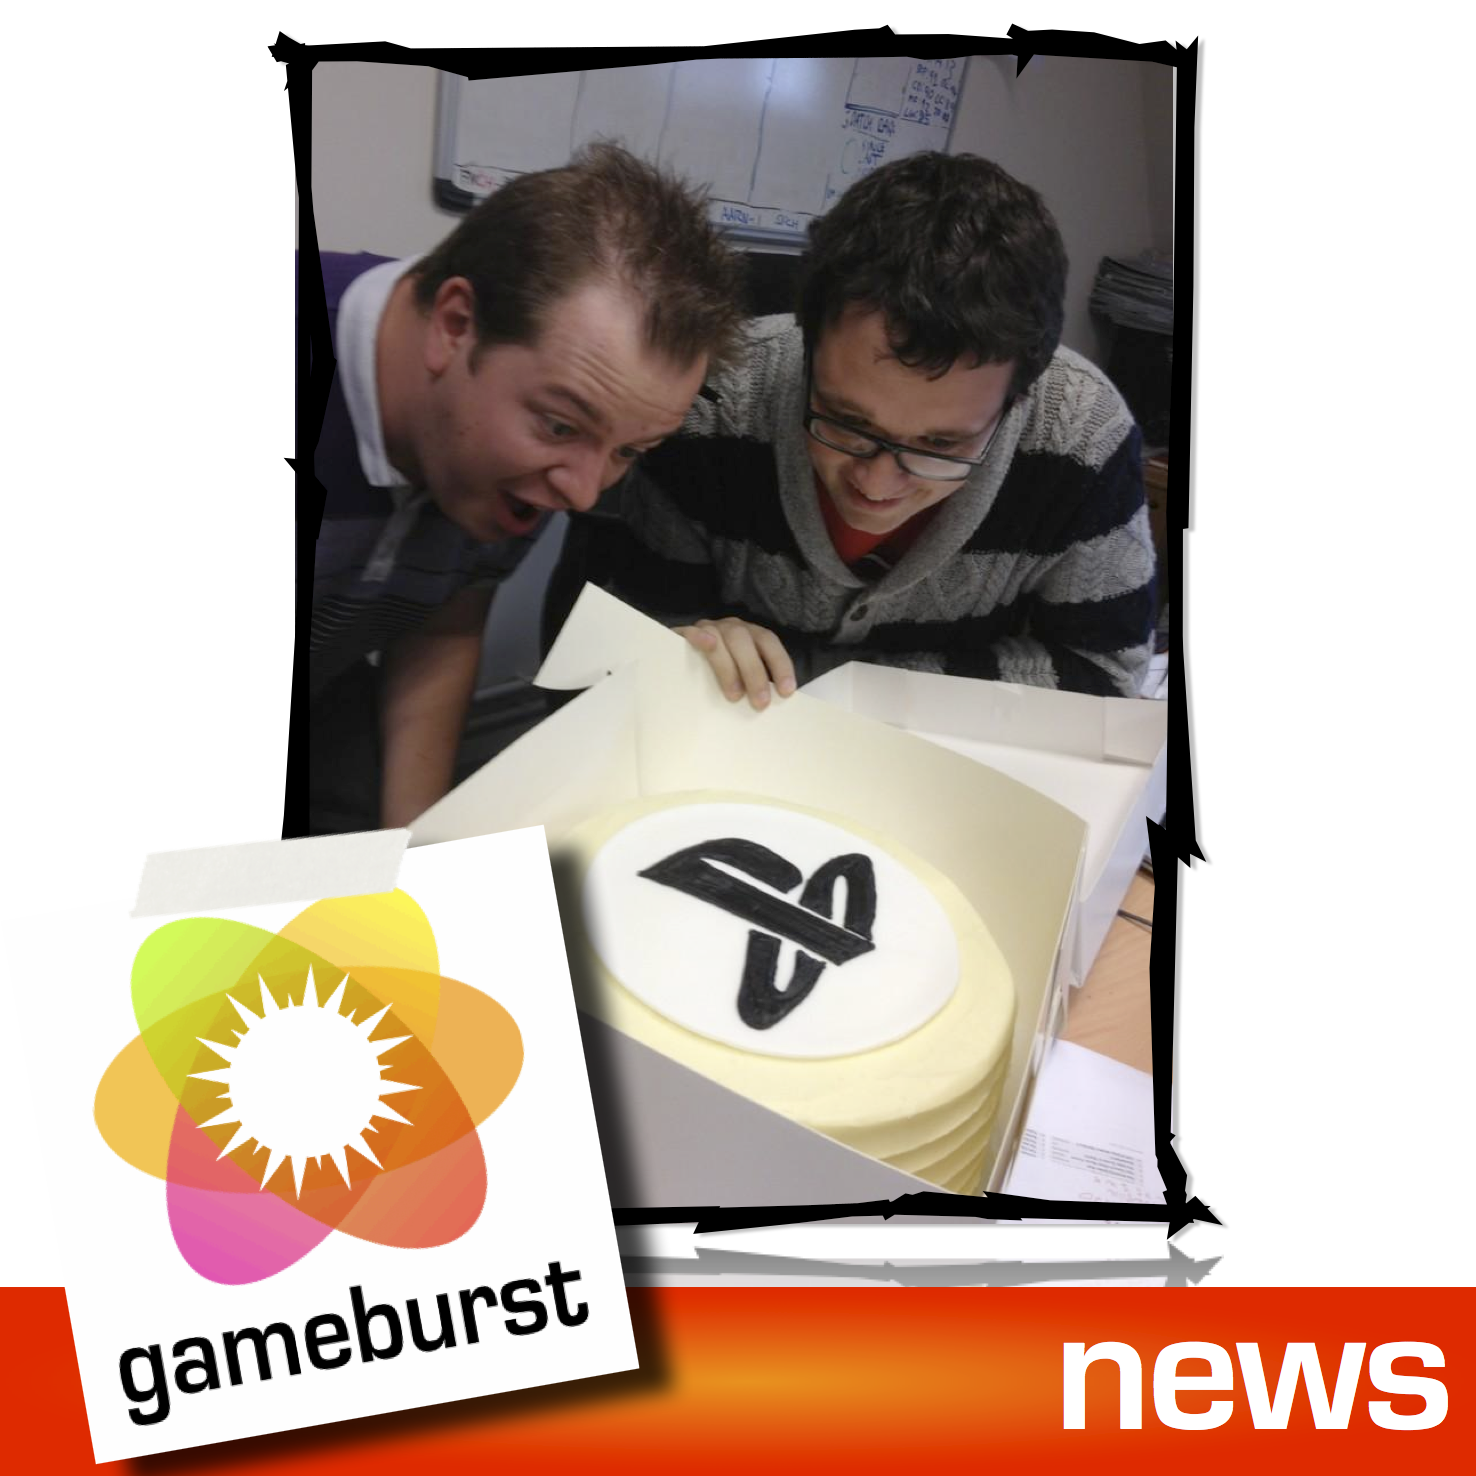 GameBurst News - October 14th 2012